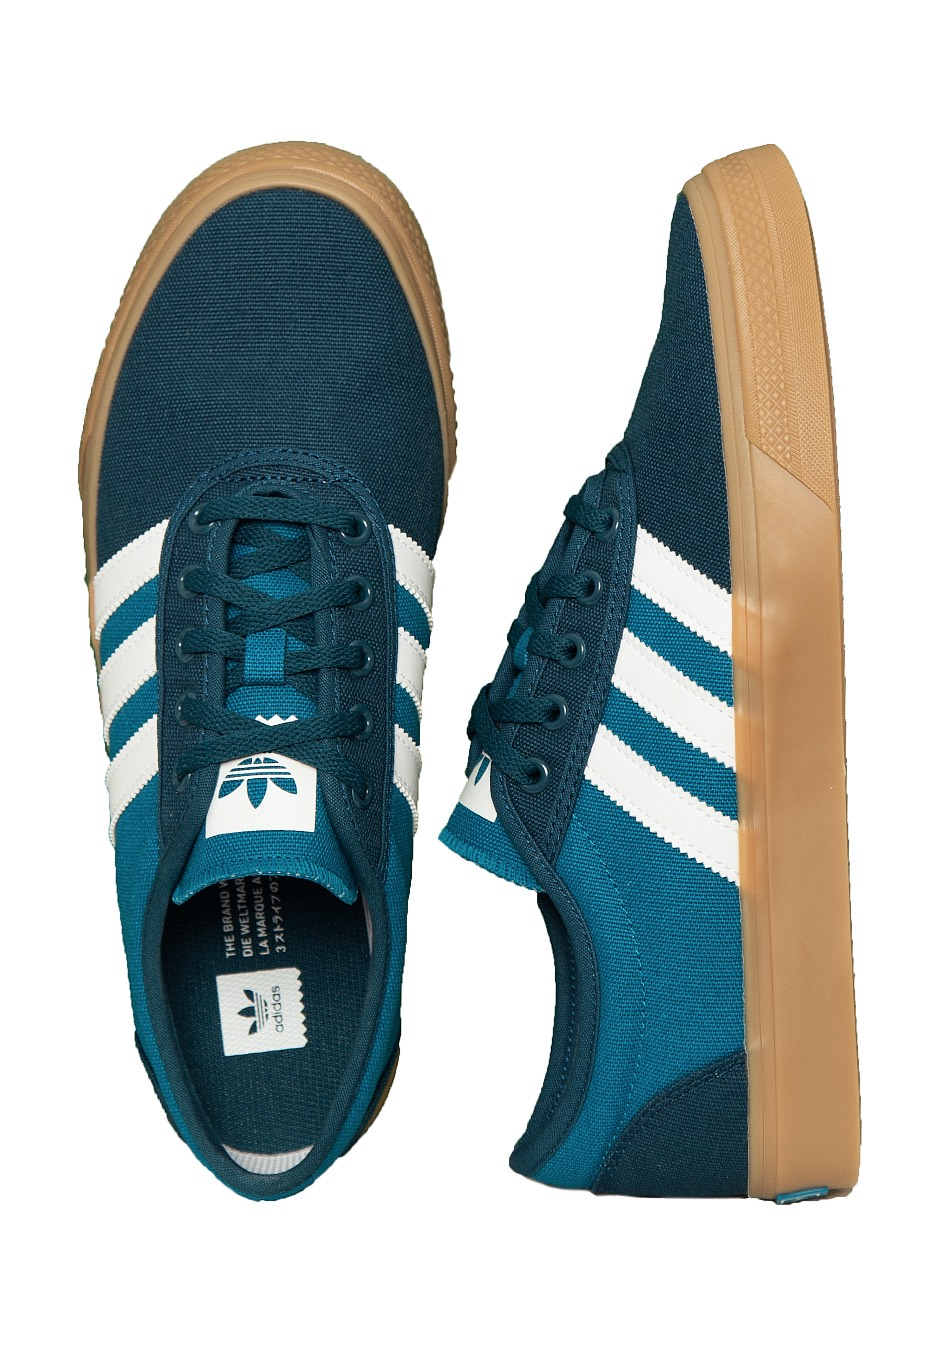 Adidas Adi Ease Tech MineralFTWR White Shoes